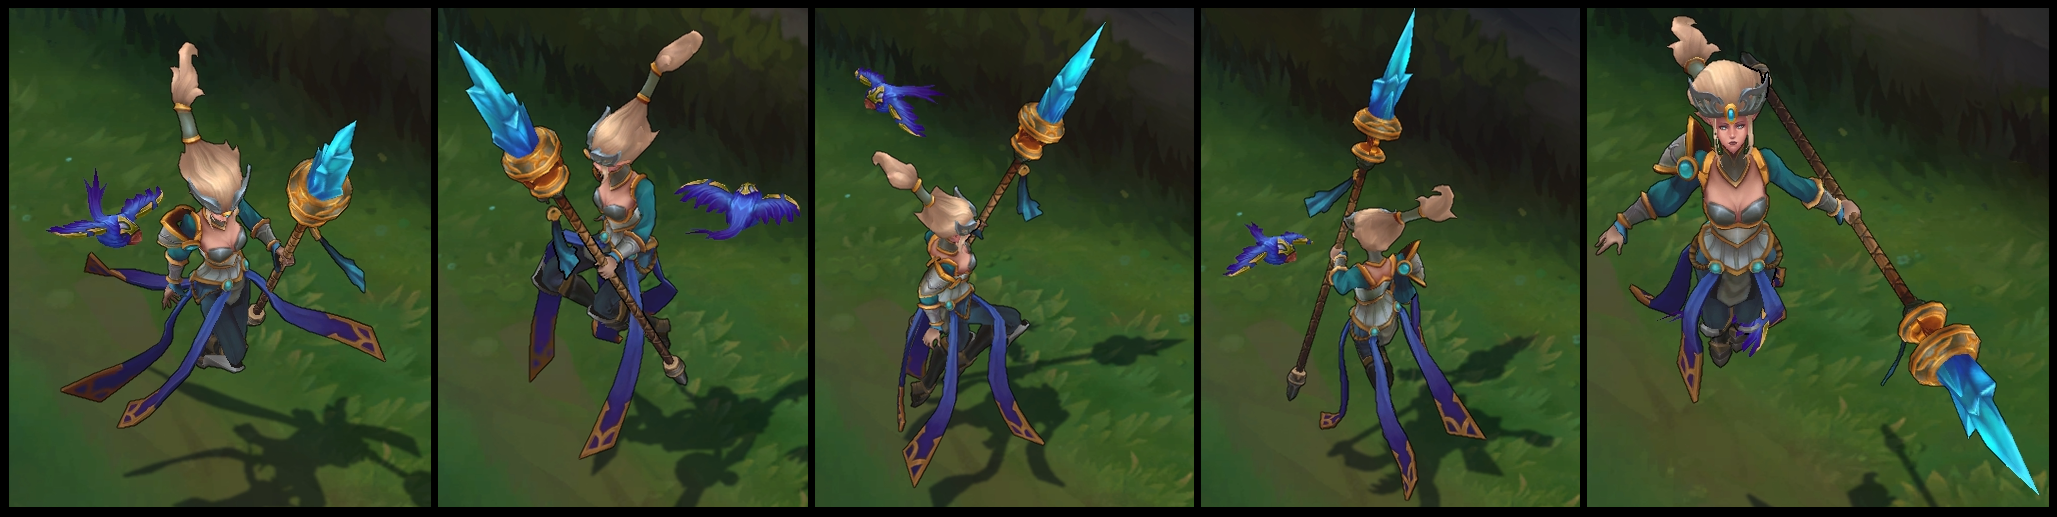 Victorious Janna Poses